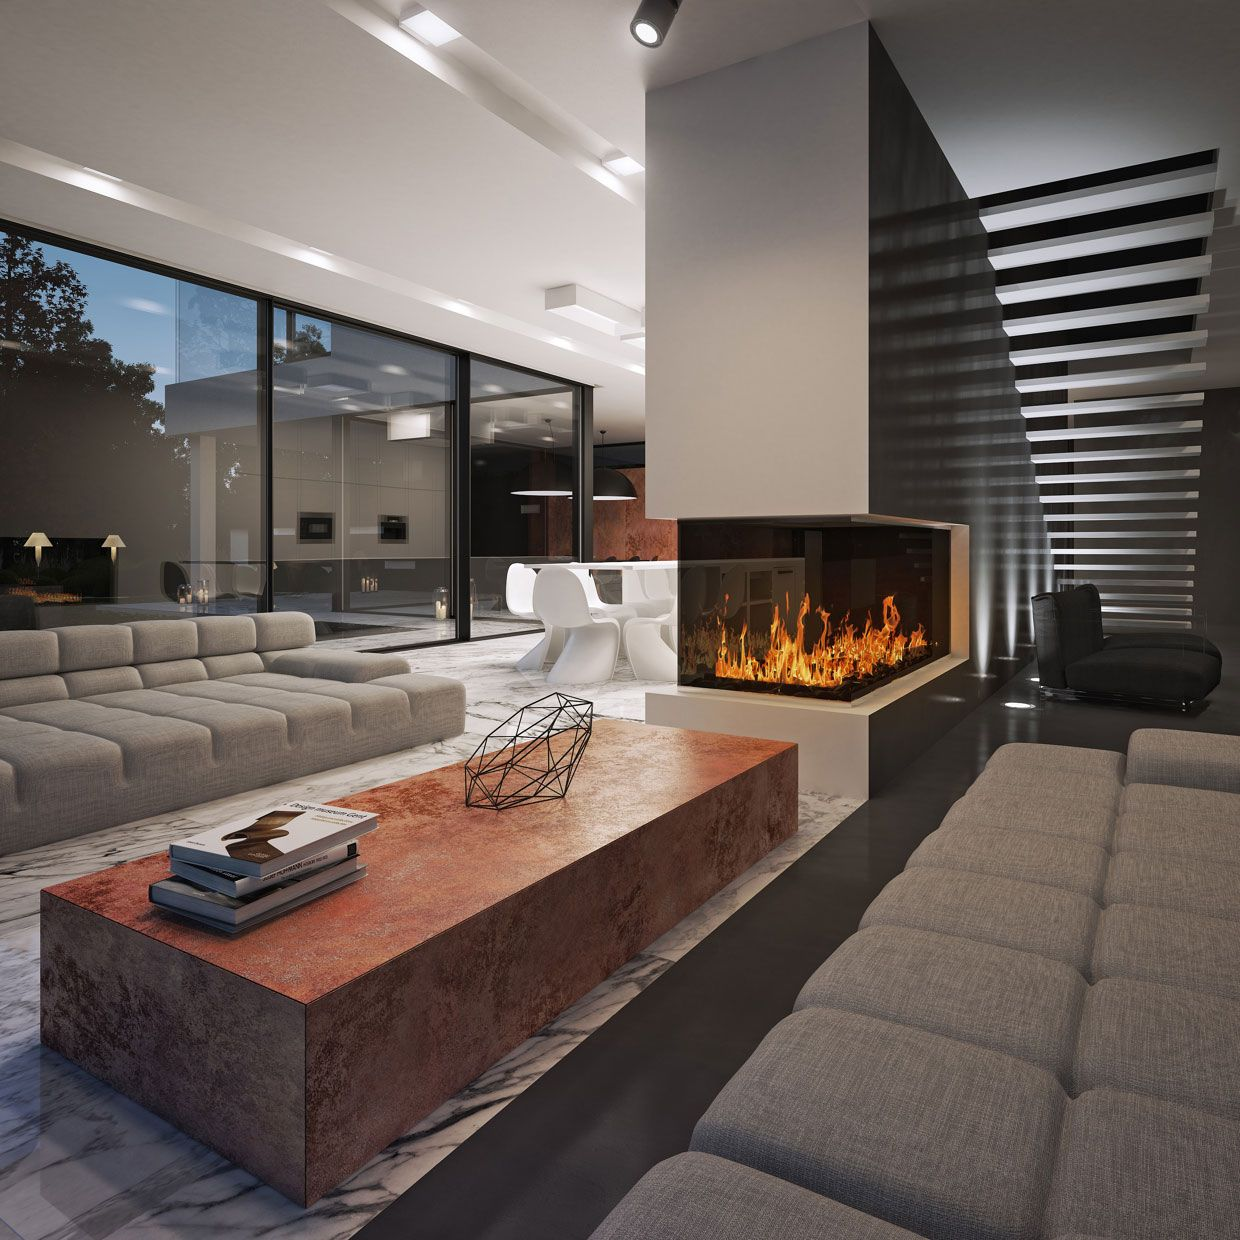 architecture modern minimalist living room design with red marble table and fireplace in the middle - Living Room With Fireplace In Middle